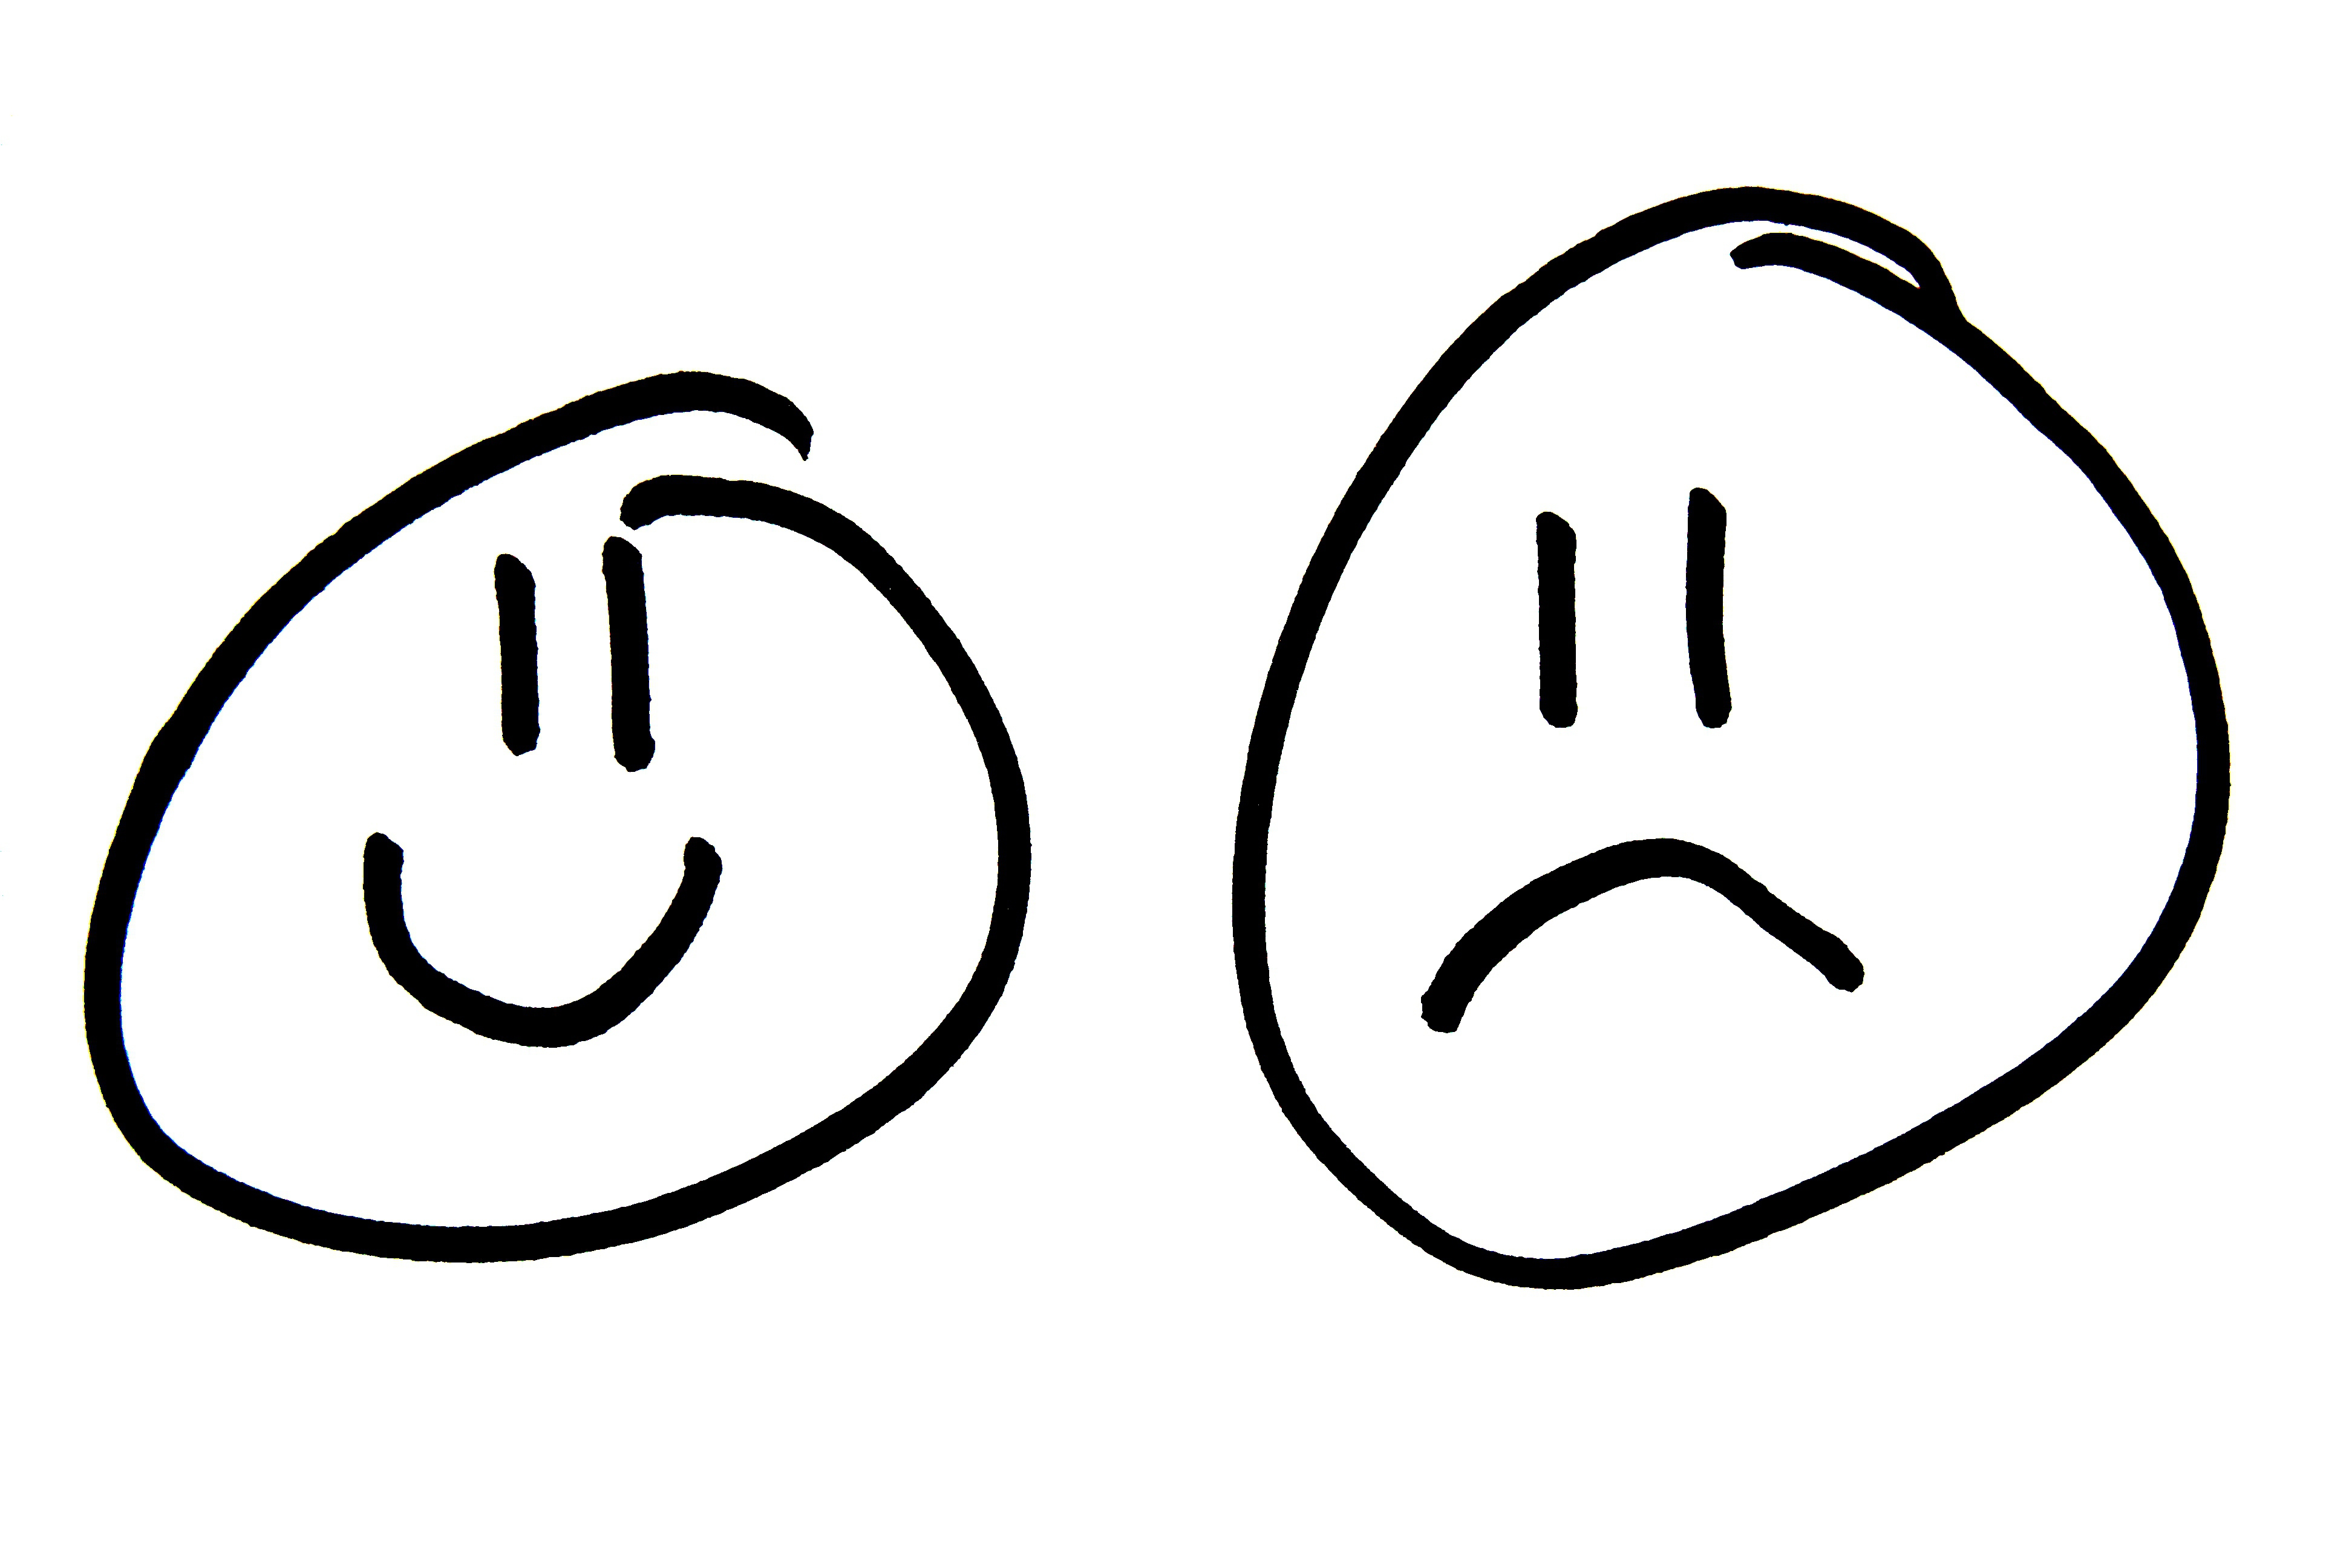 Sad Face Clipart Black And White   Clipart Panda   Free Clipart Images